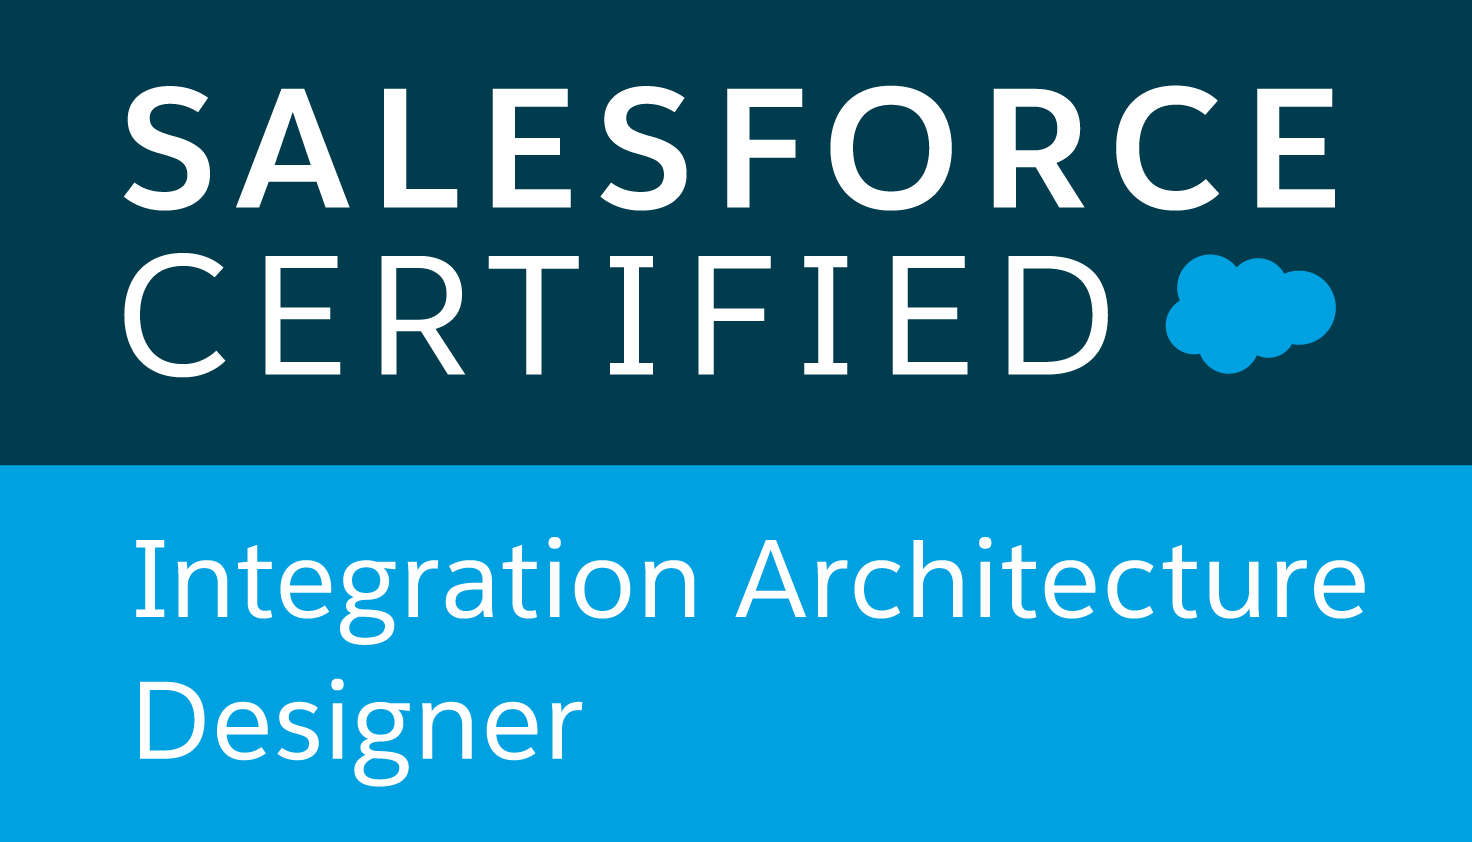 Integration Architect Designer